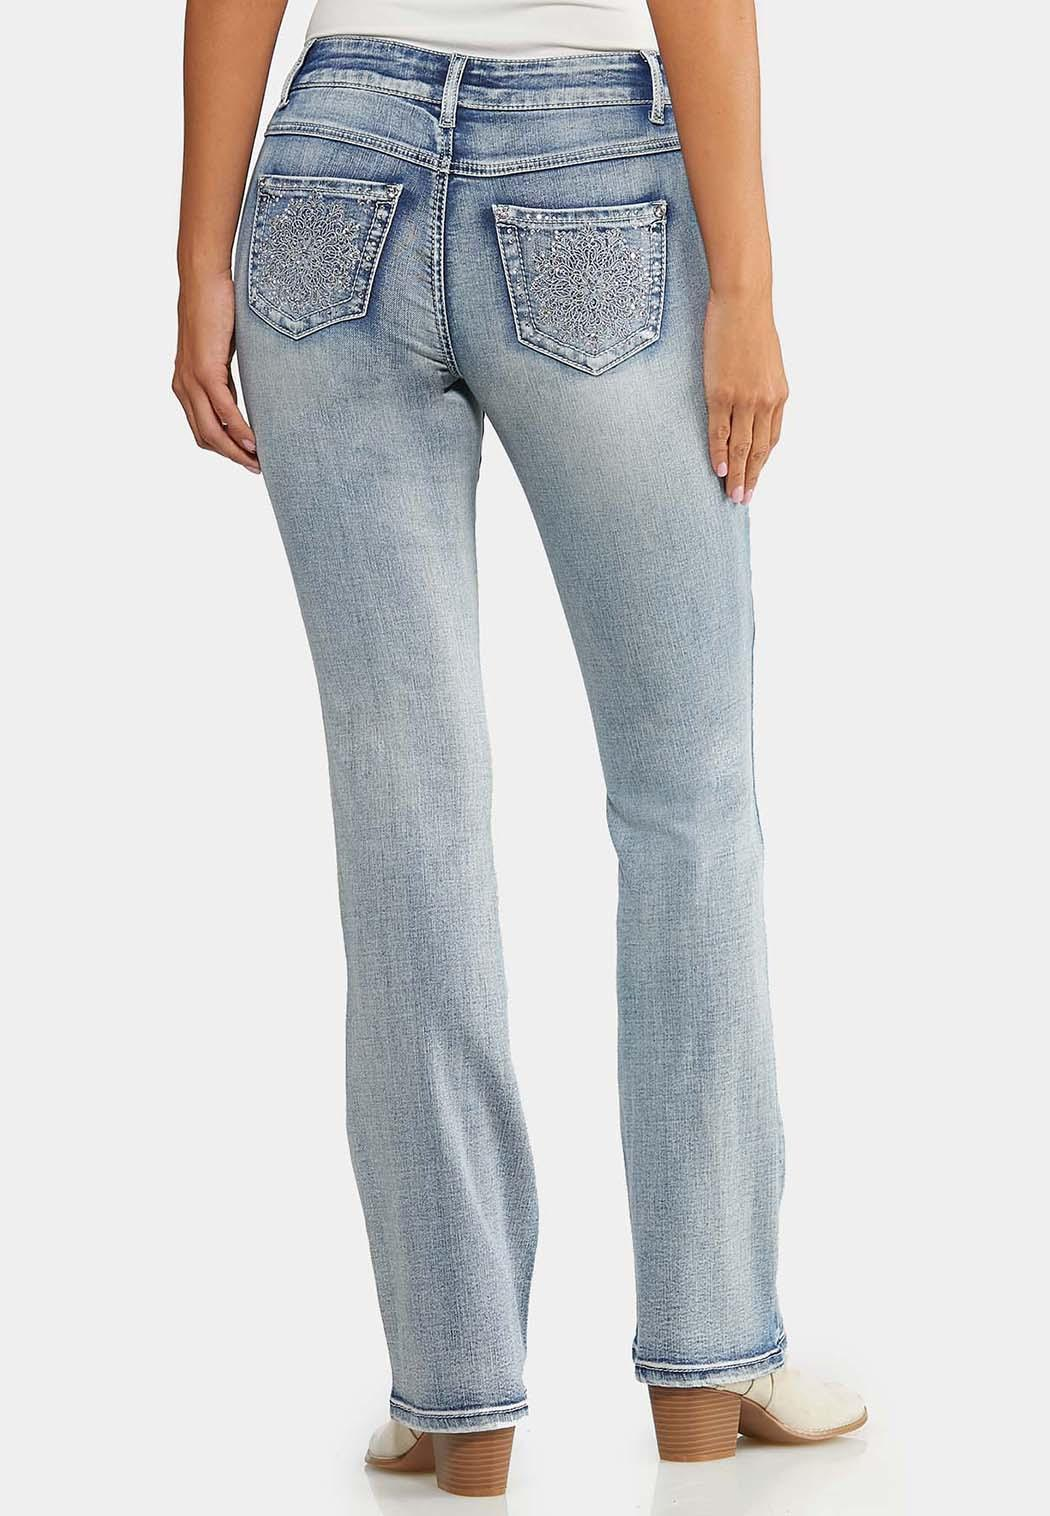 Sparkling Embroidered Jeans